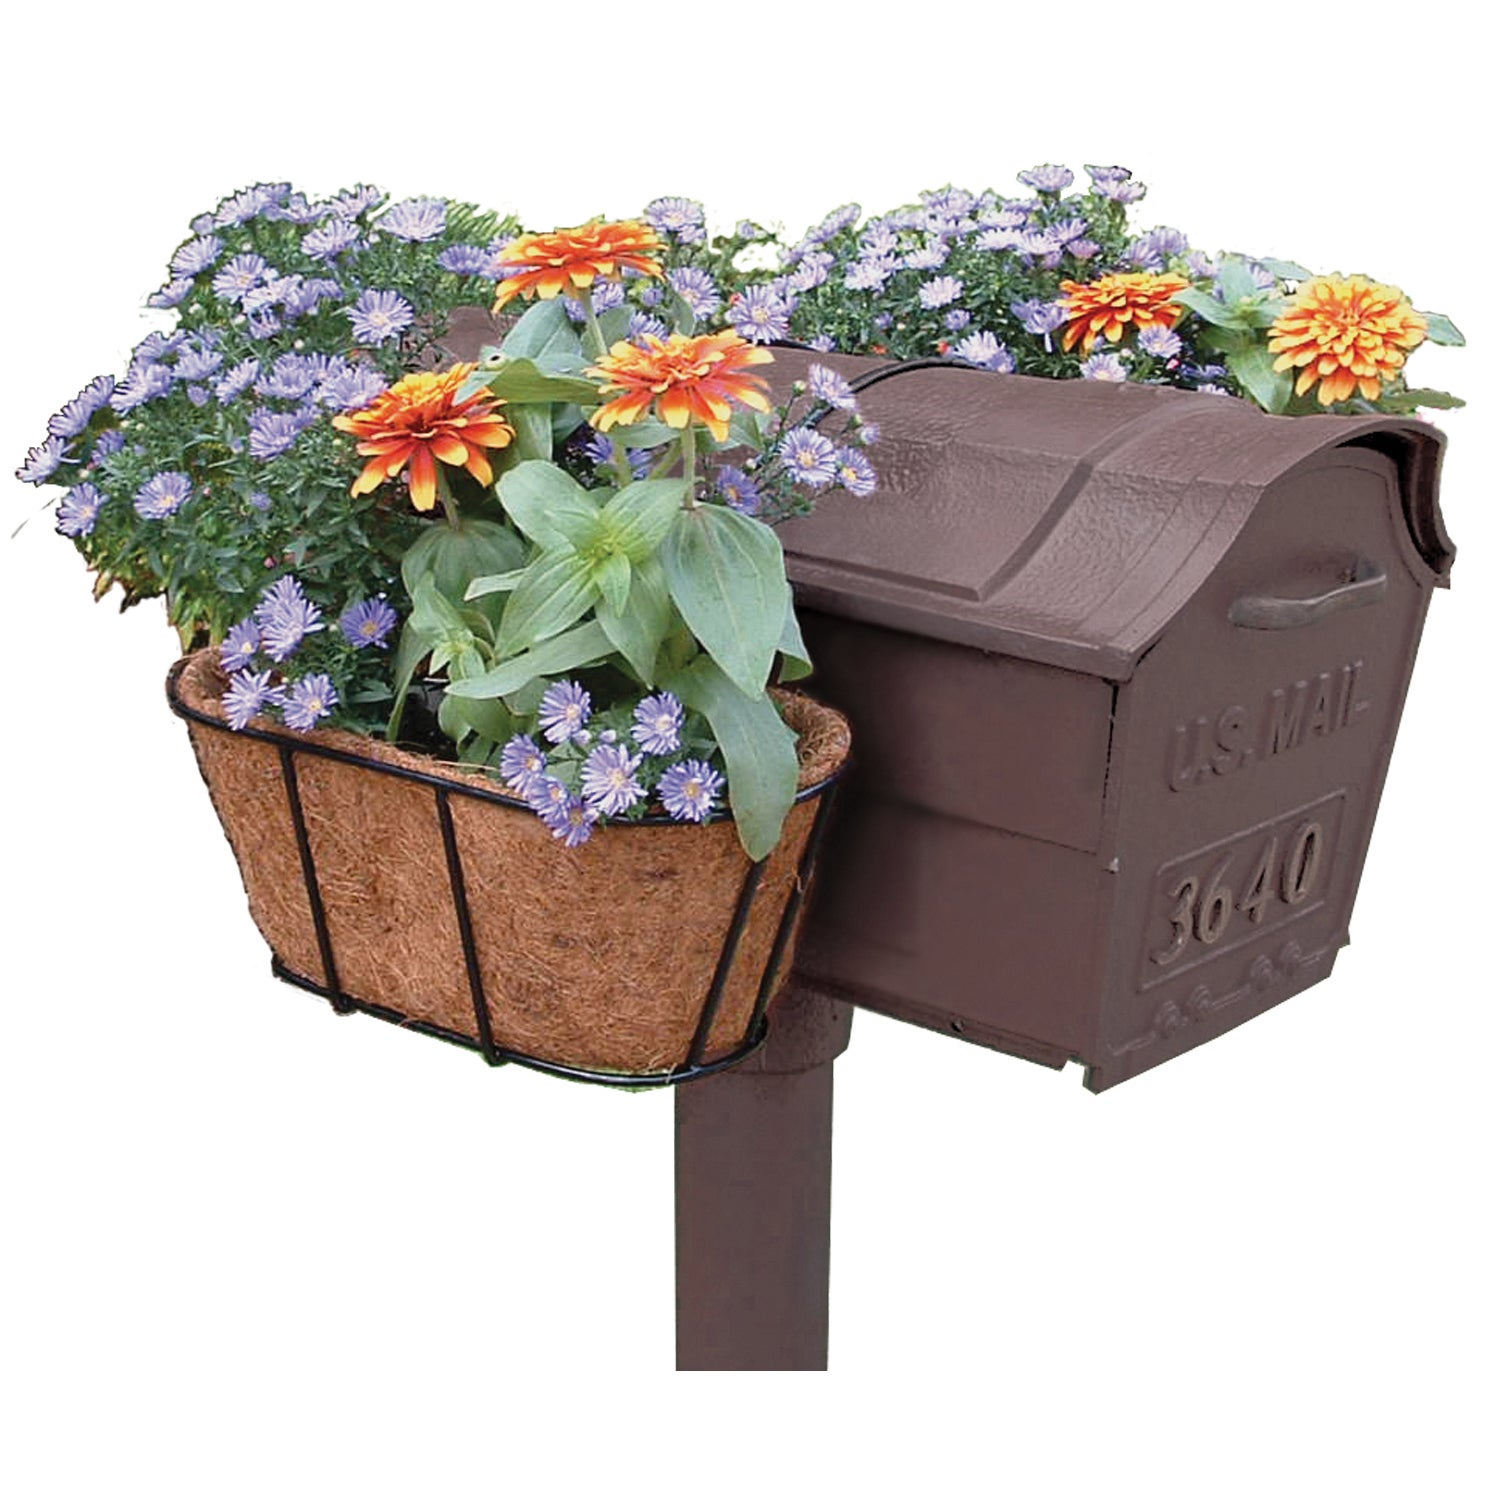 Flower Garden Mailbox Planter Free Shipping On Orders Over 45 6367302